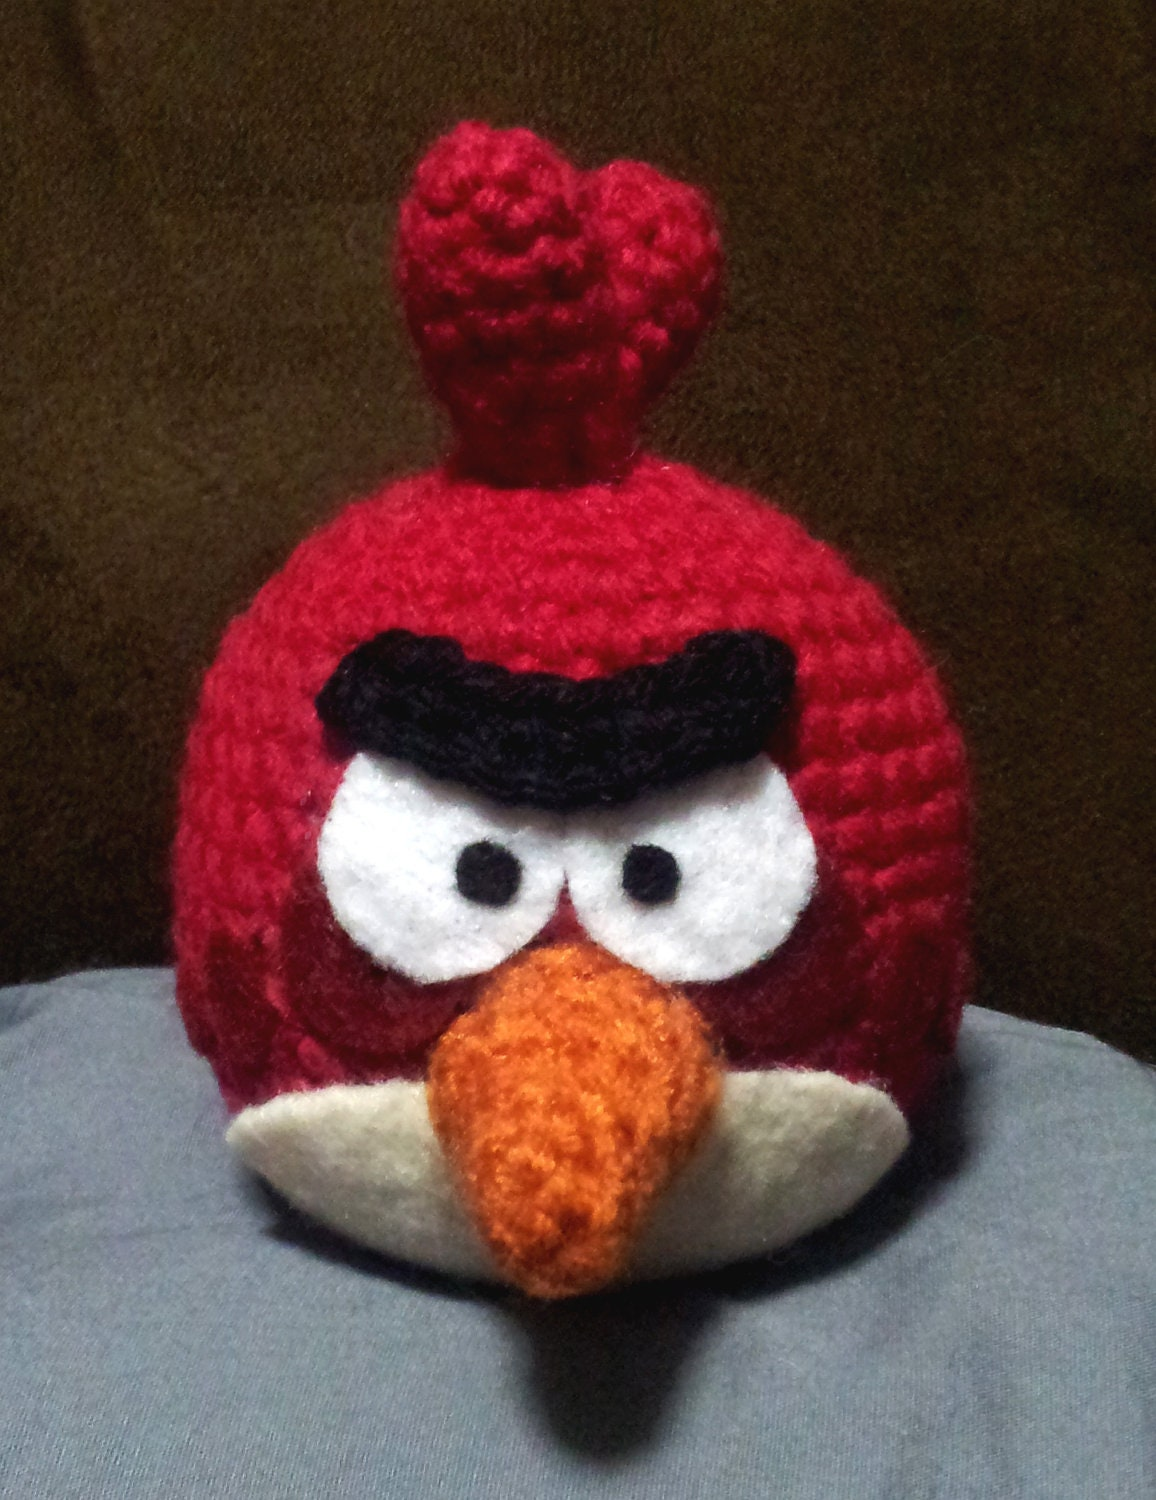 Black Angry Bird Amigurumi Pattern : ANGRY BIRDS Crochet Amigurumi Red Bird by JNArts on Etsy